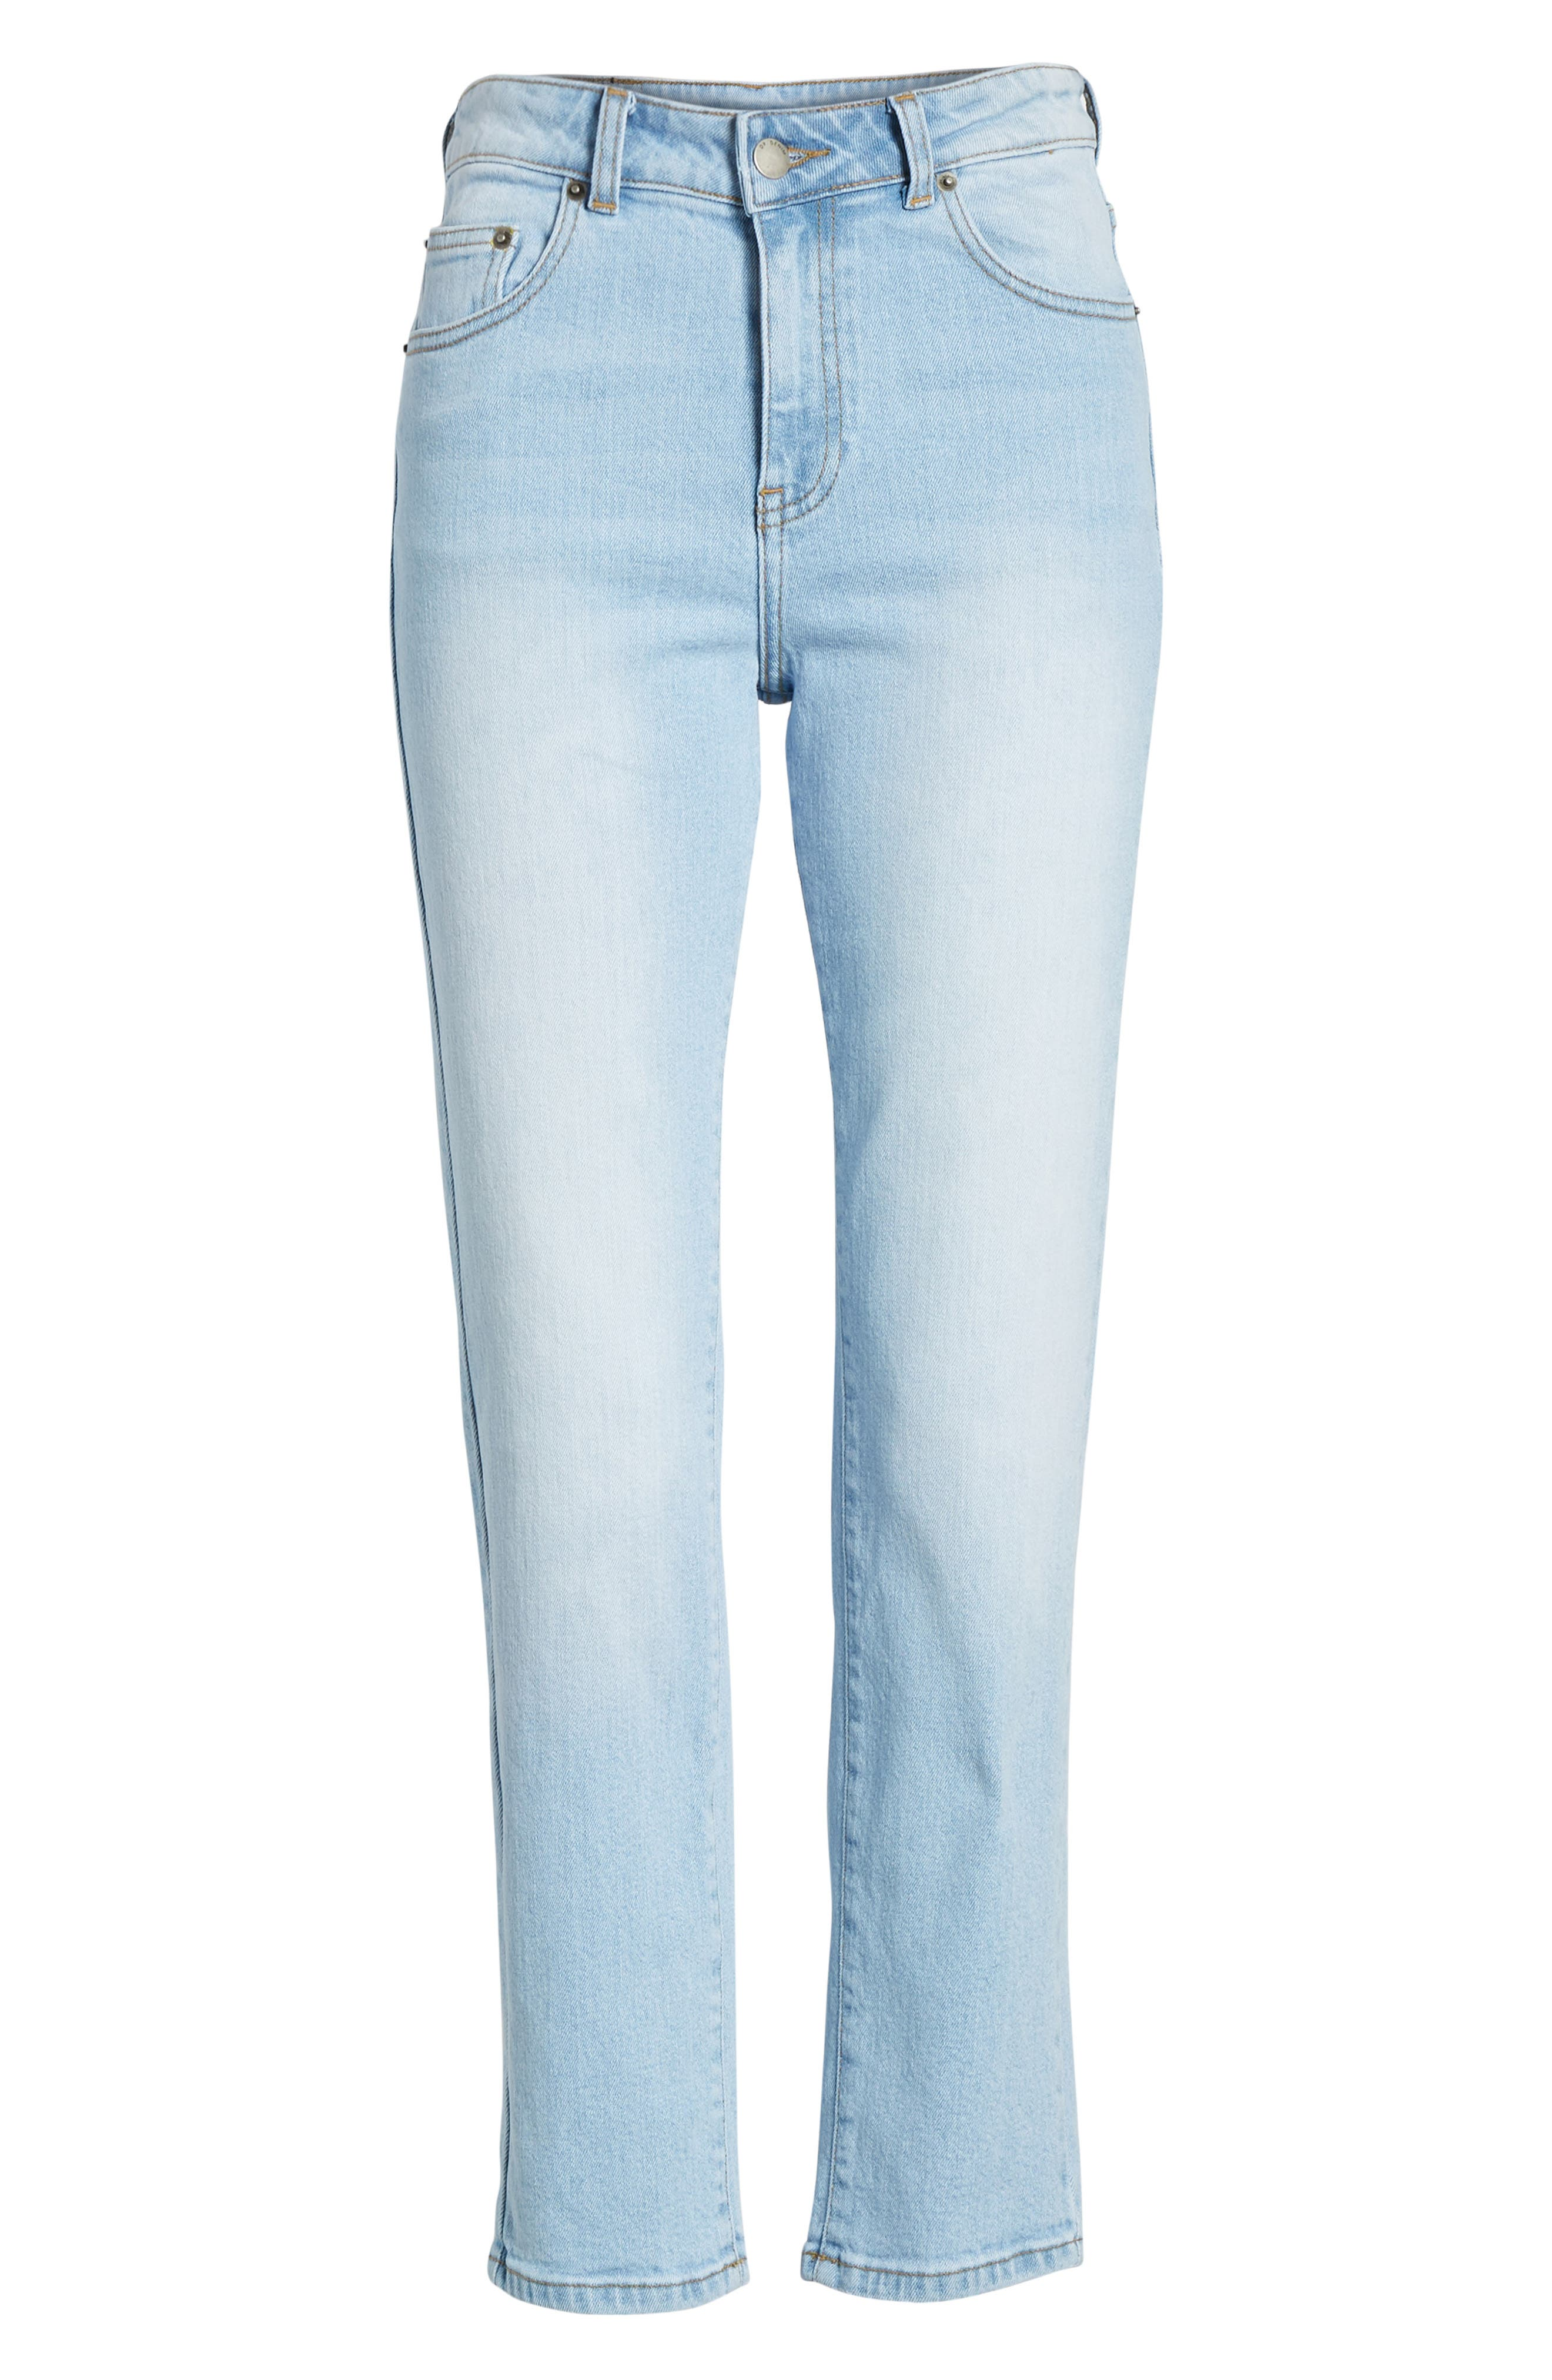 Edie High Waist Crop Straight Leg Jeans,                             Alternate thumbnail 7, color,                             Shaded Light Blue